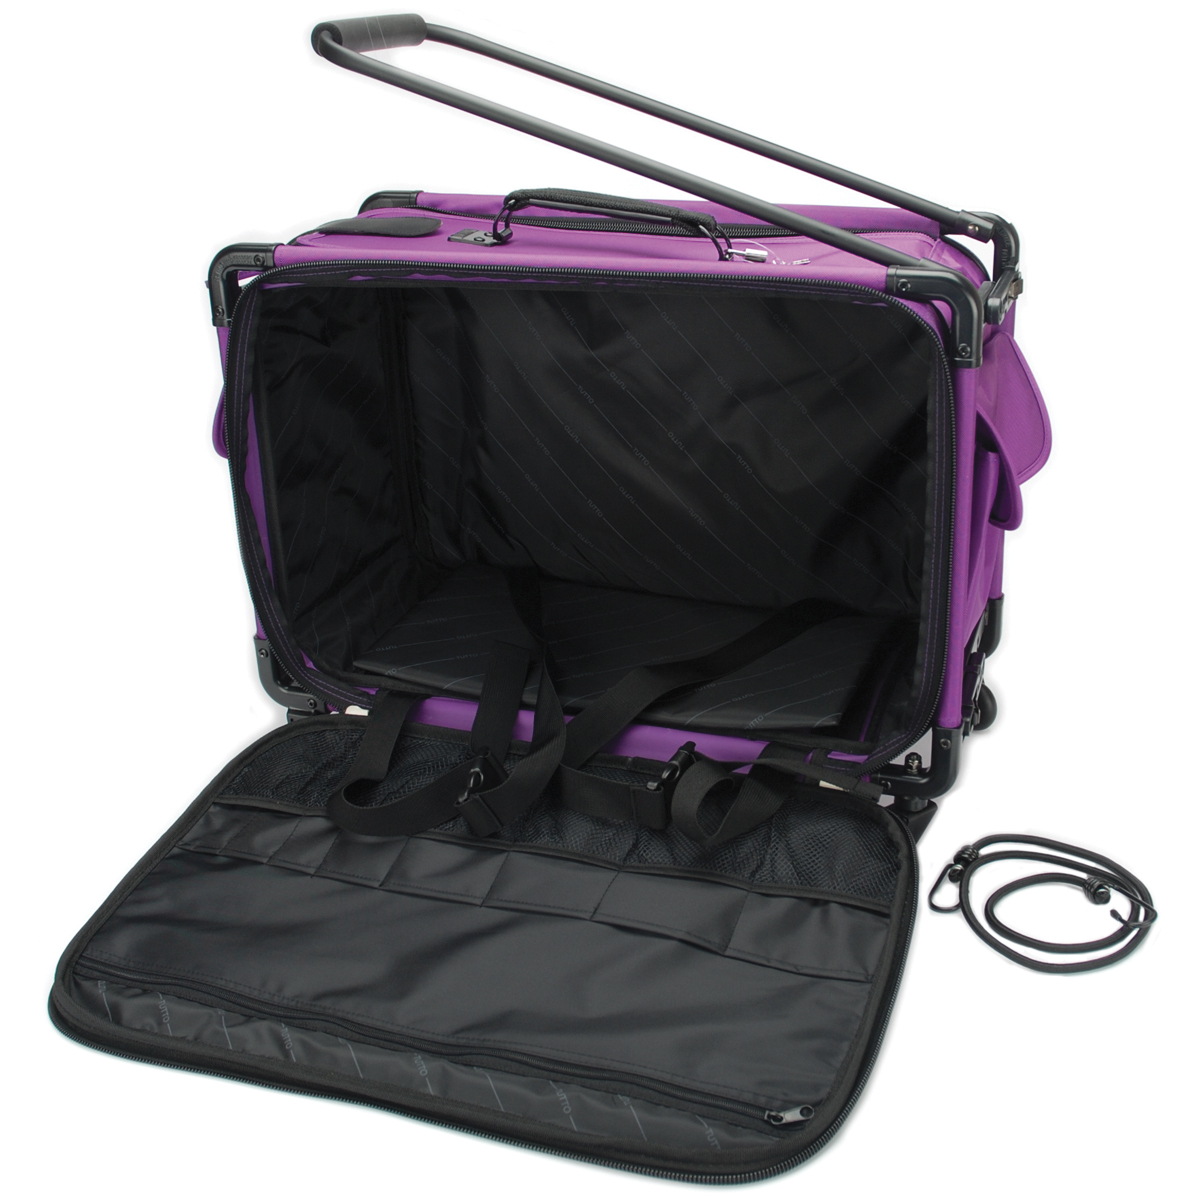 Mascot Metropolitan Inc. Tutto Machine On Wheels, Large Purple Machine Bag